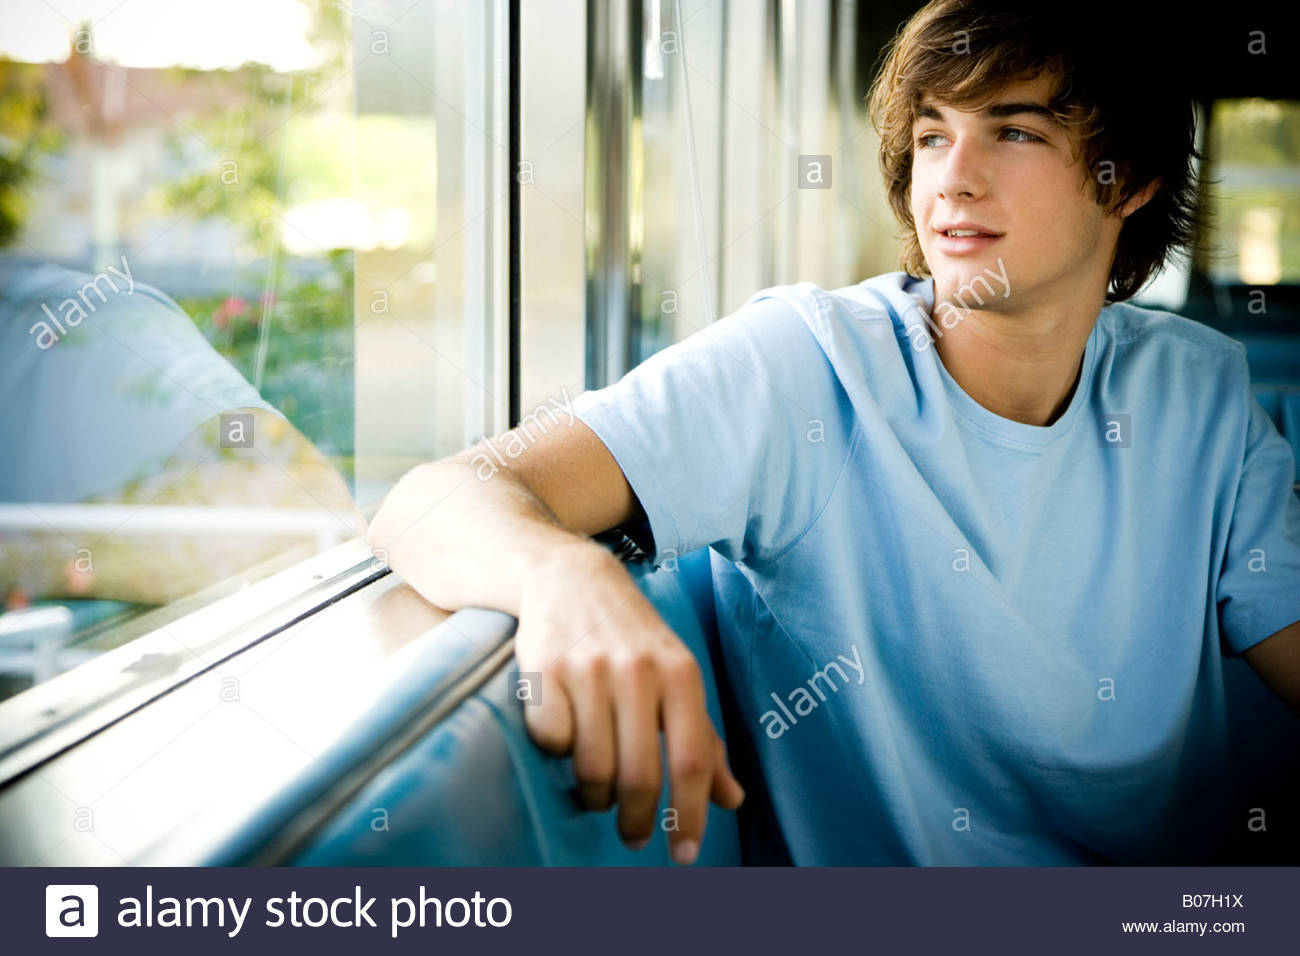 Portrait of a young man hanging out at a diner. - Stock Image